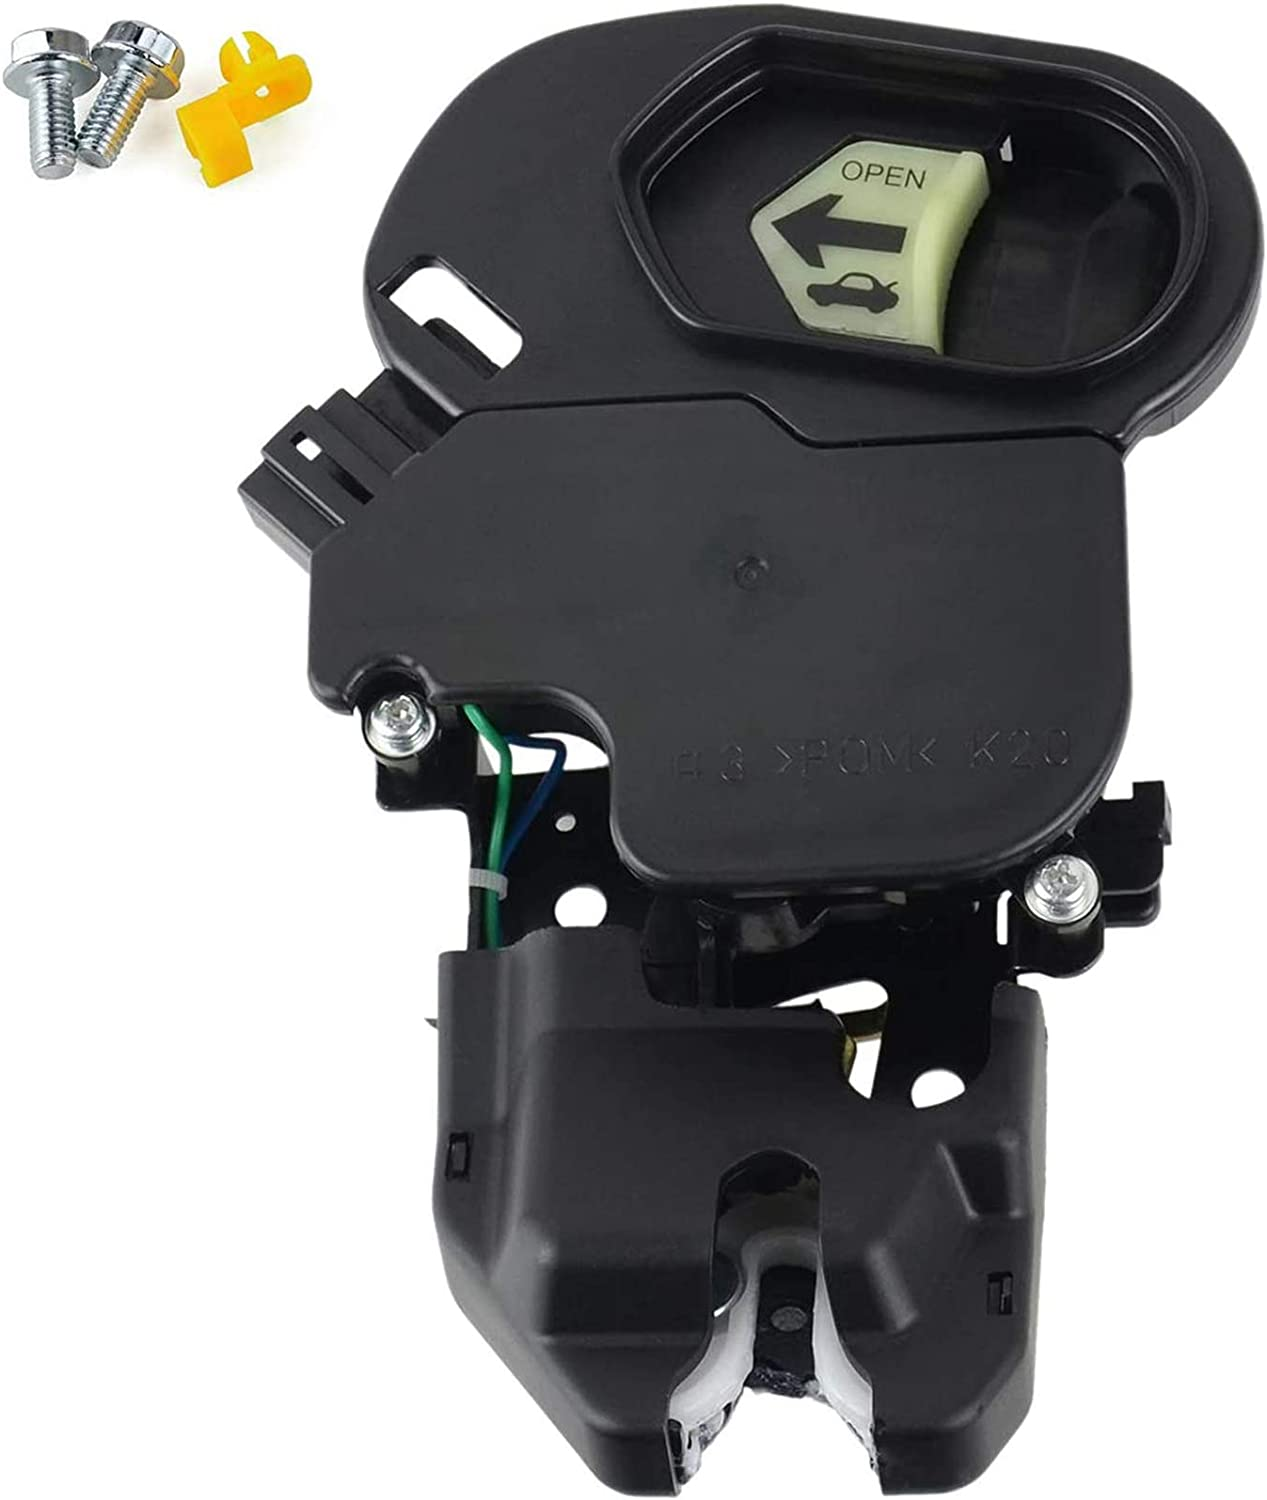 74851-SDA-A22 Rear Animer and price revision Tailgate Trunk Latch Gate 5 popular Actuator Lock Tail